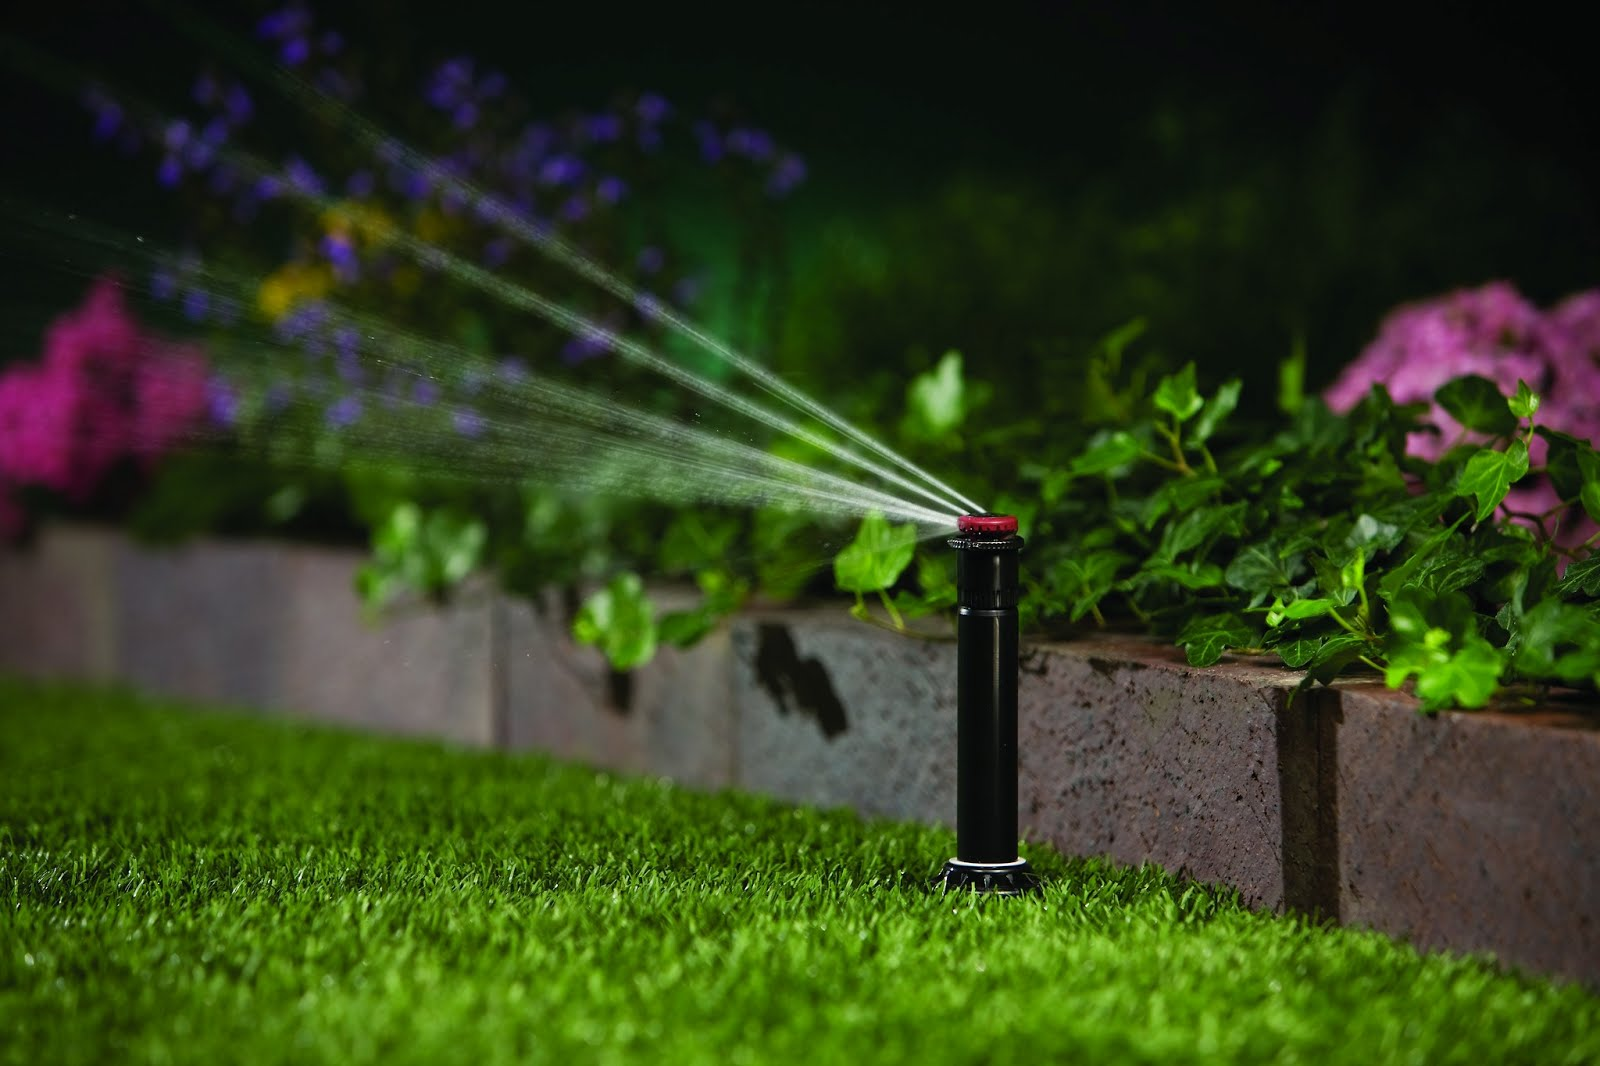 Sprinkler Services-San Marcos TX Professional Landscapers & Outdoor Living Designs-We offer Landscape Design, Outdoor Patios & Pergolas, Outdoor Living Spaces, Stonescapes, Residential & Commercial Landscaping, Irrigation Installation & Repairs, Drainage Systems, Landscape Lighting, Outdoor Living Spaces, Tree Service, Lawn Service, and more.